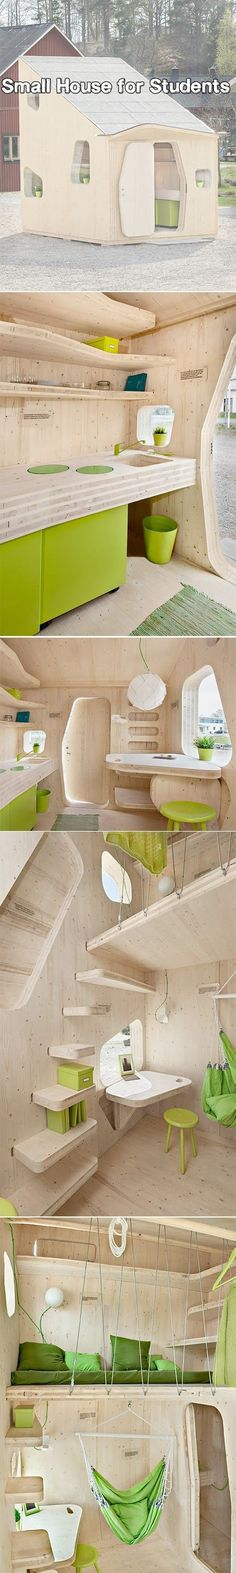 Cool And Small House For Students. Looks a lot like a pod!